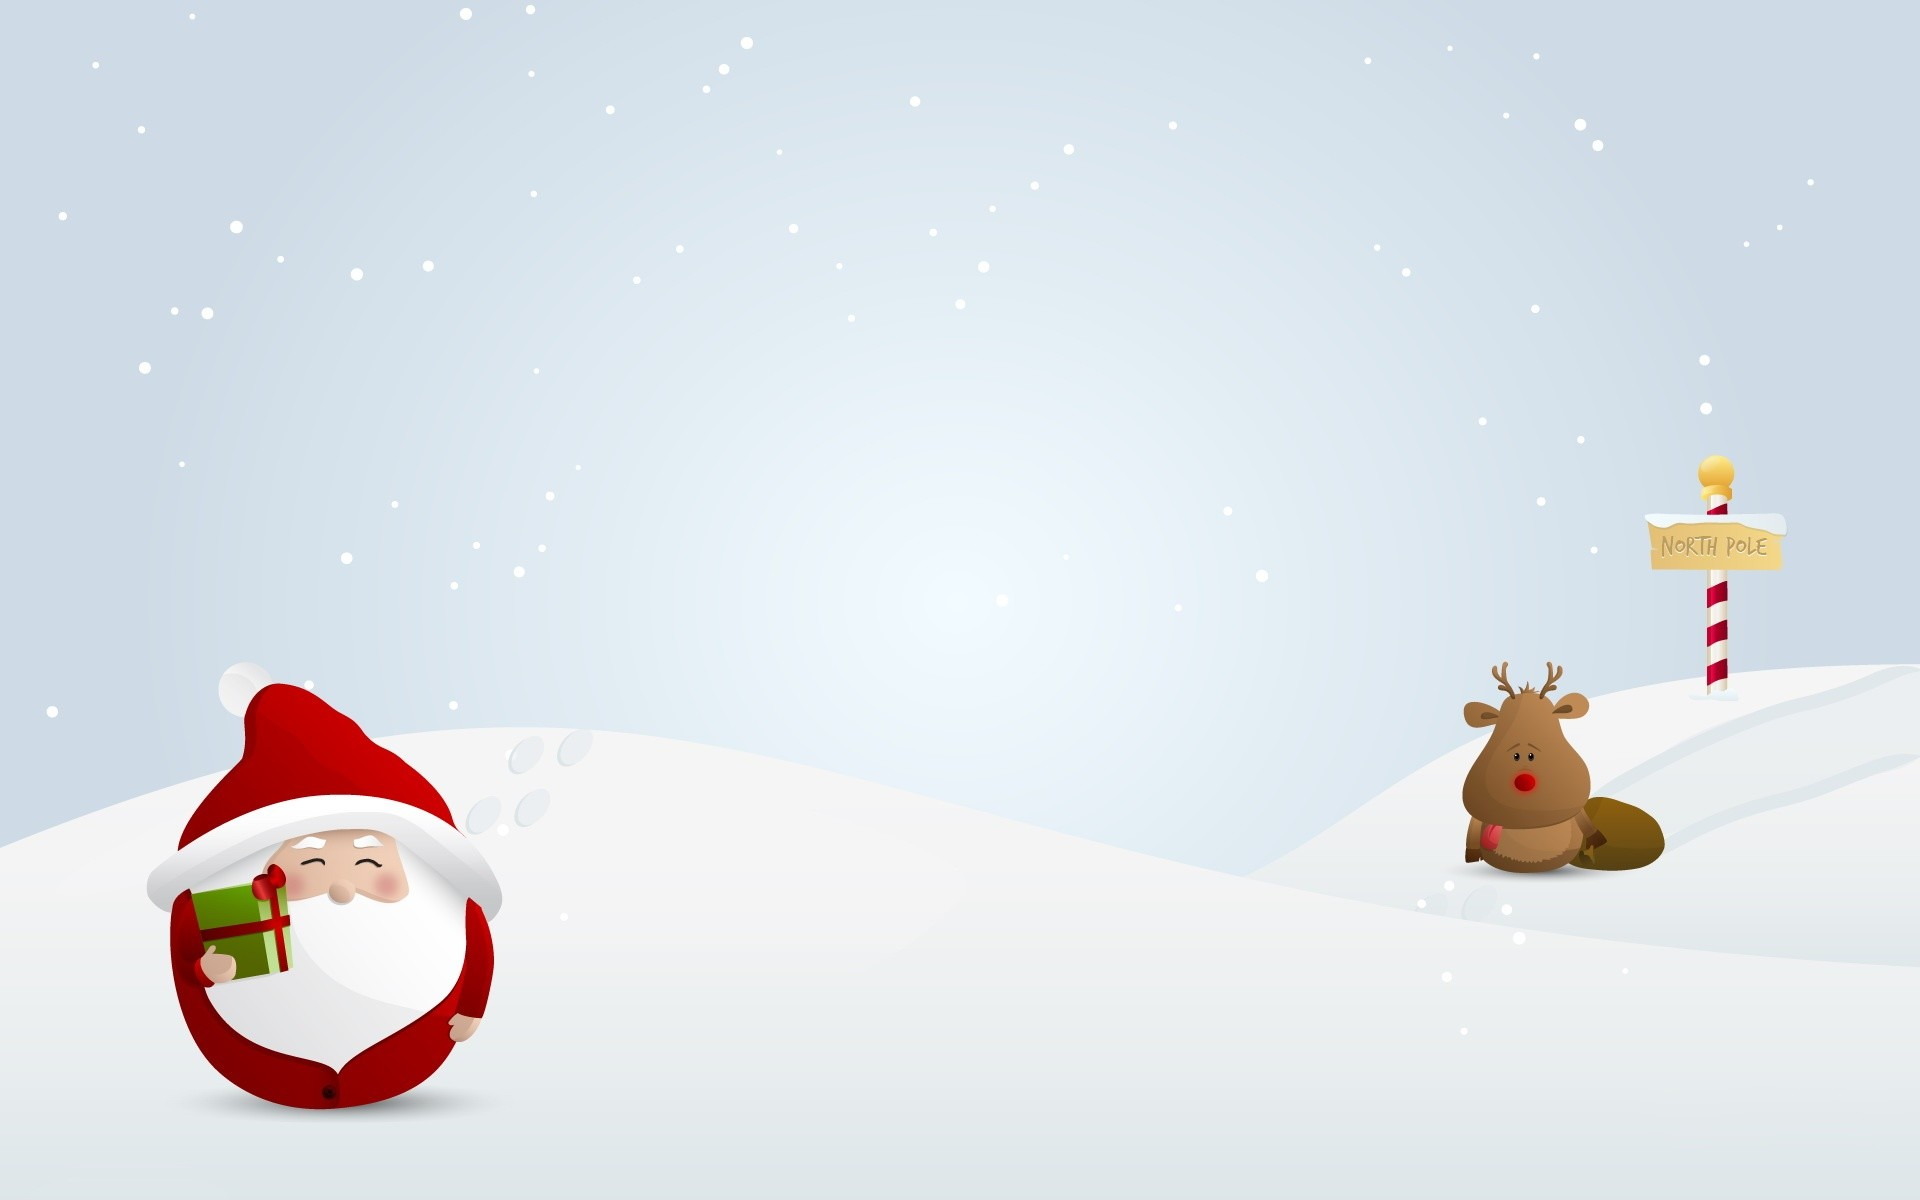 Background clipart north pole. Santa wallpapers backgrounds images